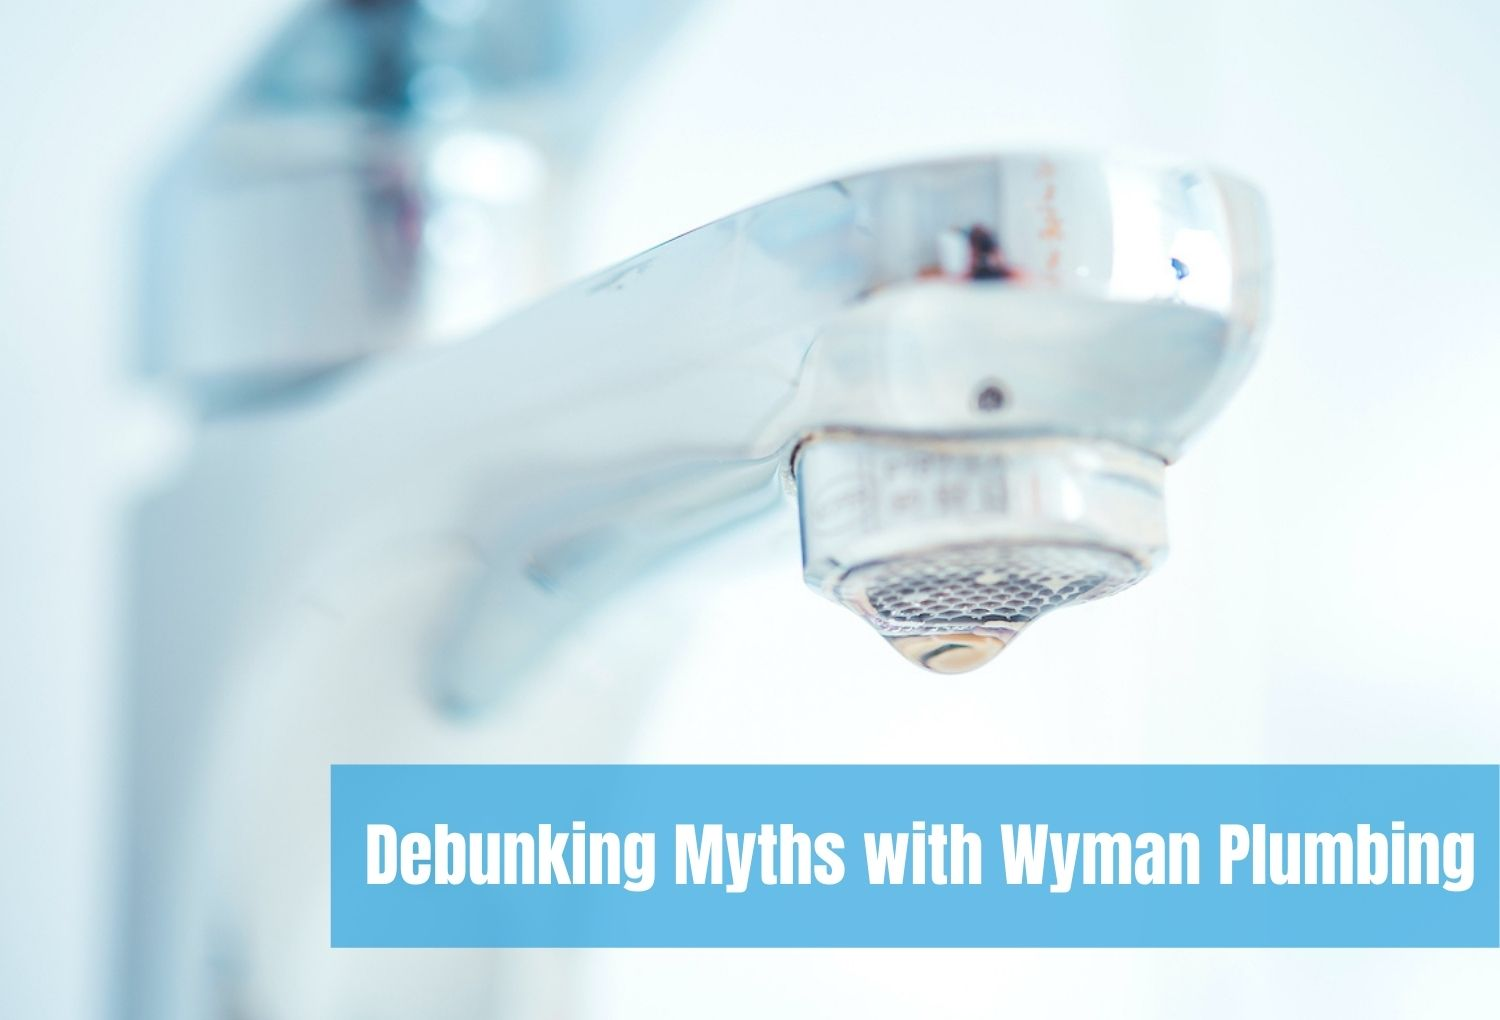 Faucet leaking slowly that Wyman Plumbing needs to fix